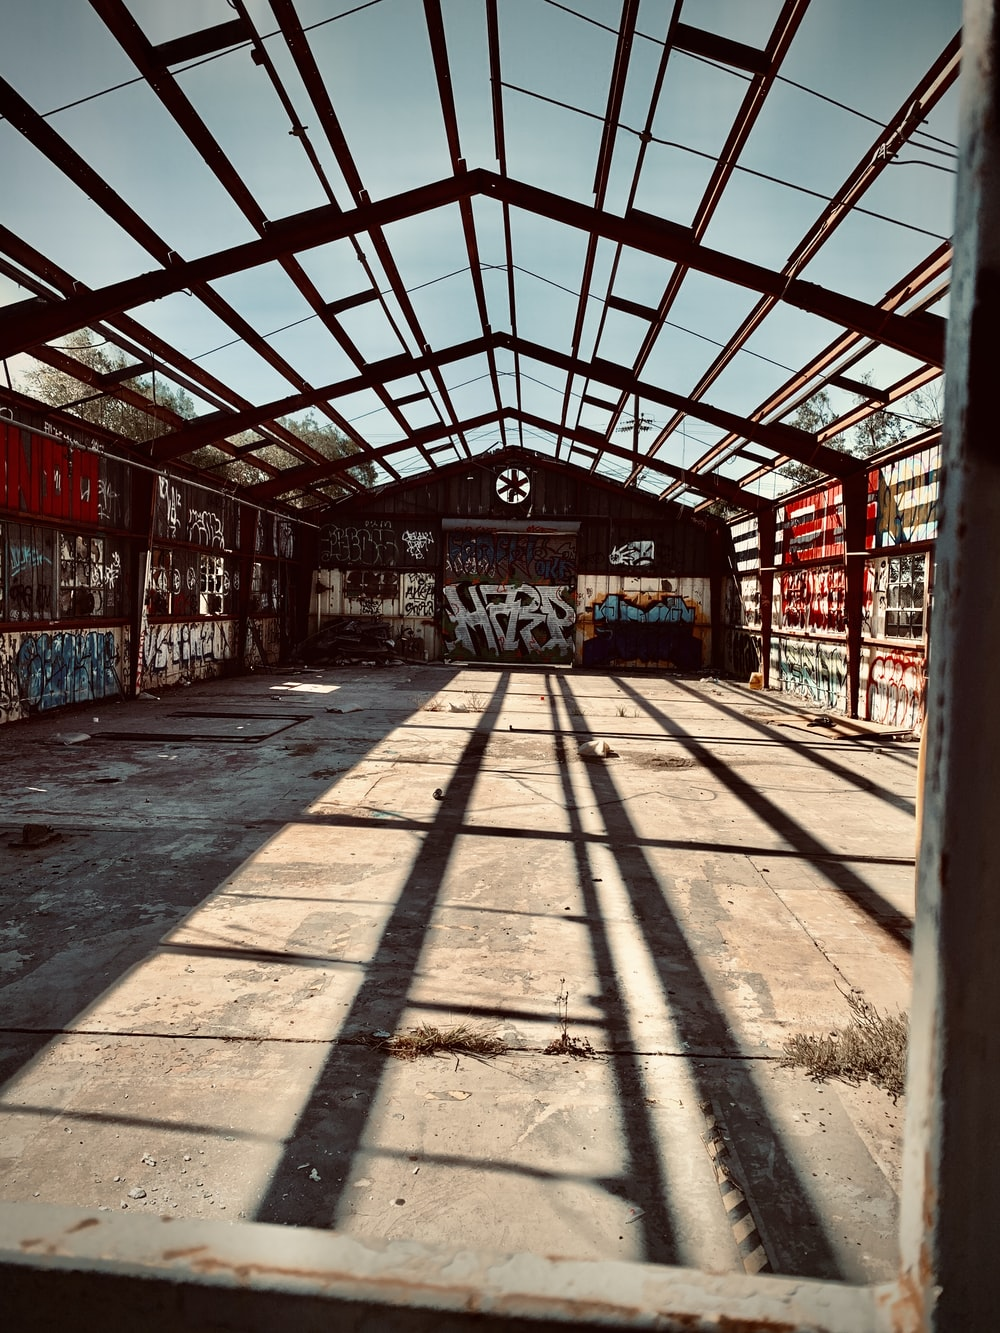 building interior surrounded by graffiti